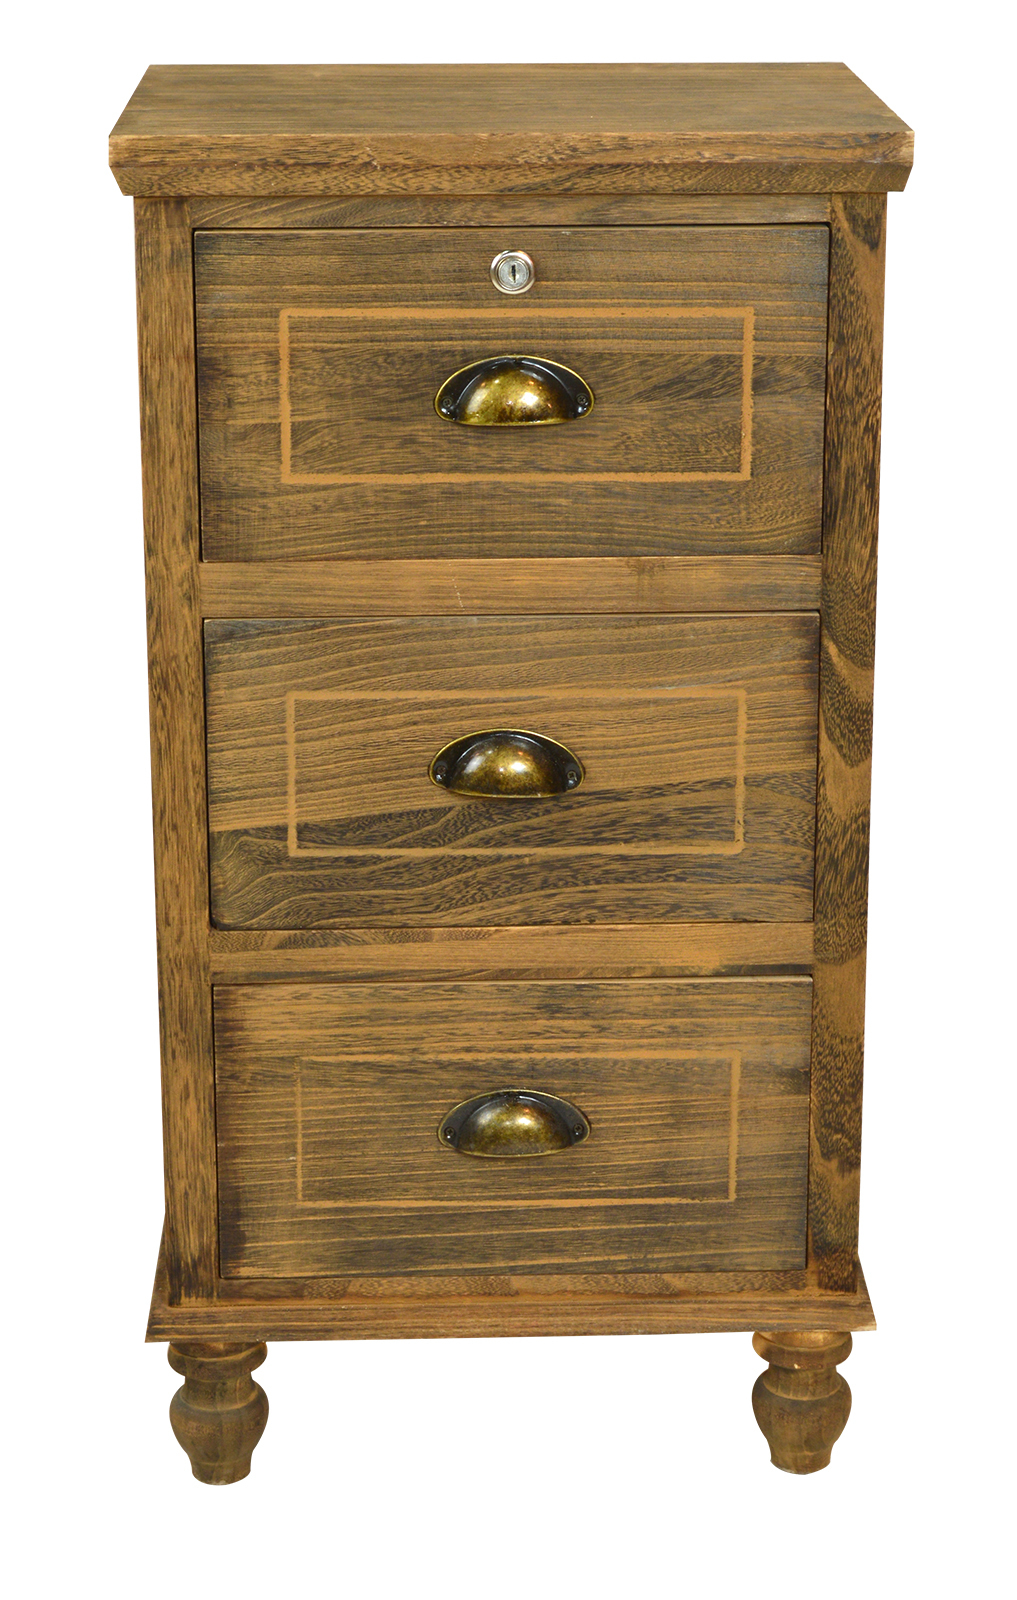 3 drawer w lock 1601 front.jpg